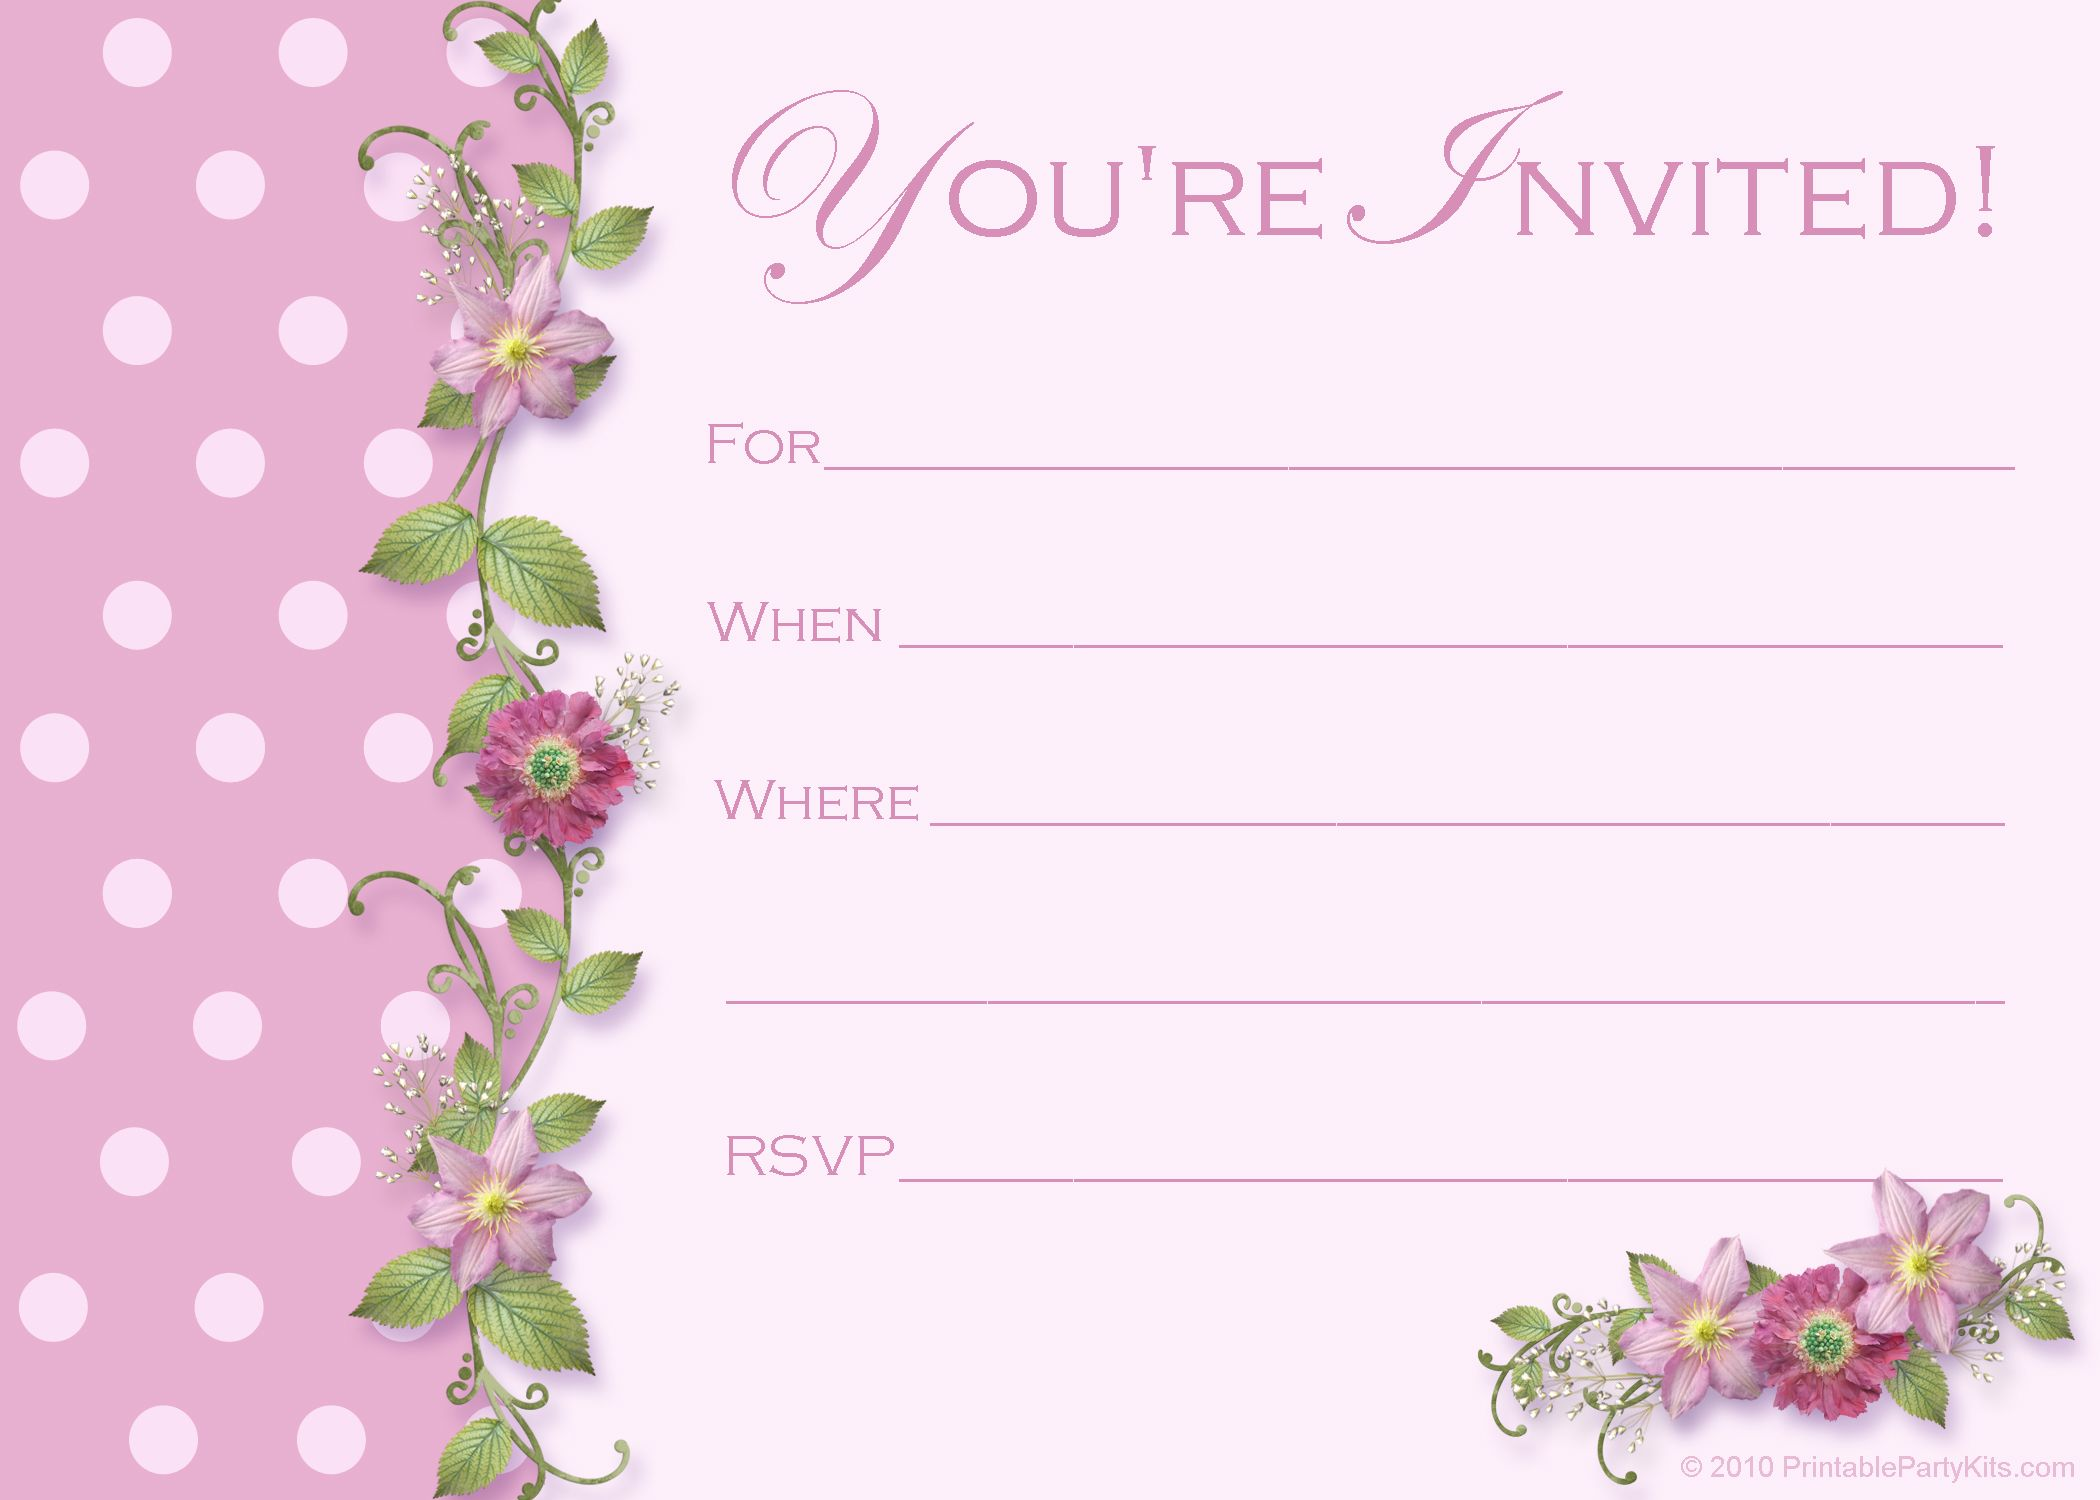 Get FREE Sweet 16 Birthday Invitations